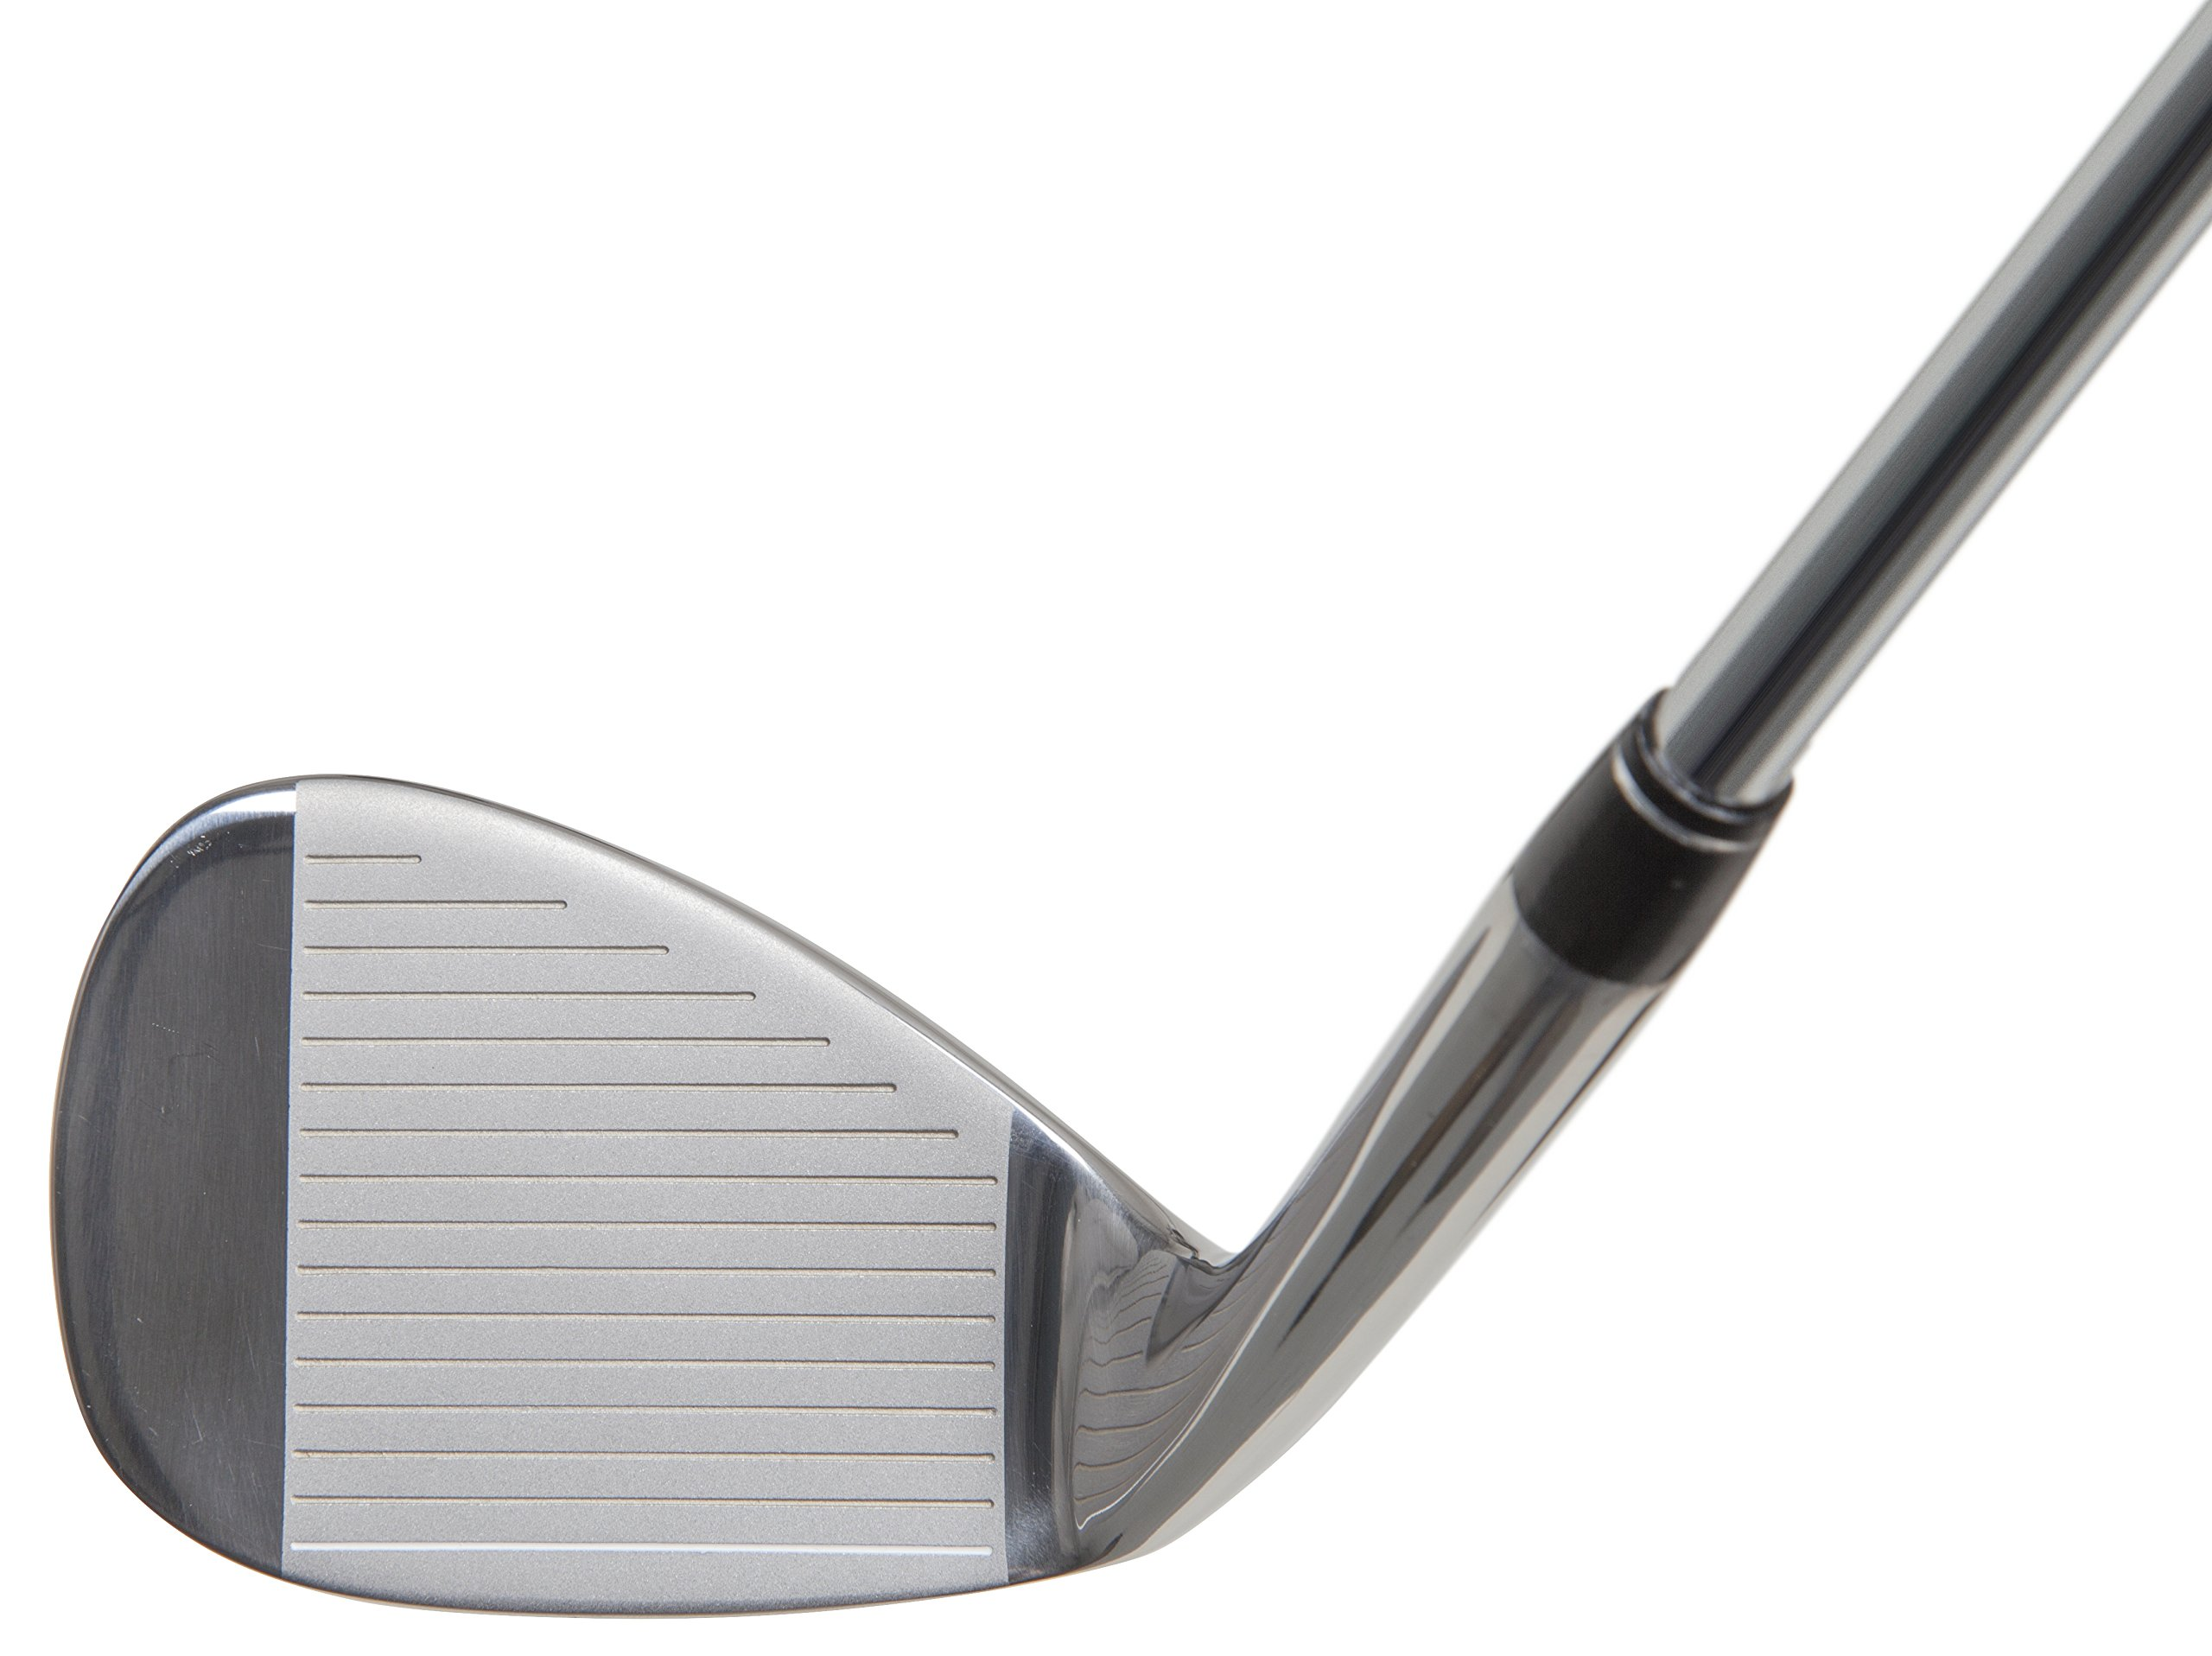 Pinemeadow Golf Men's Pre 4 Wedge Set, Right Hand, Steel, Regular, 52, 56, 60, 64 by Pinemeadow Golf